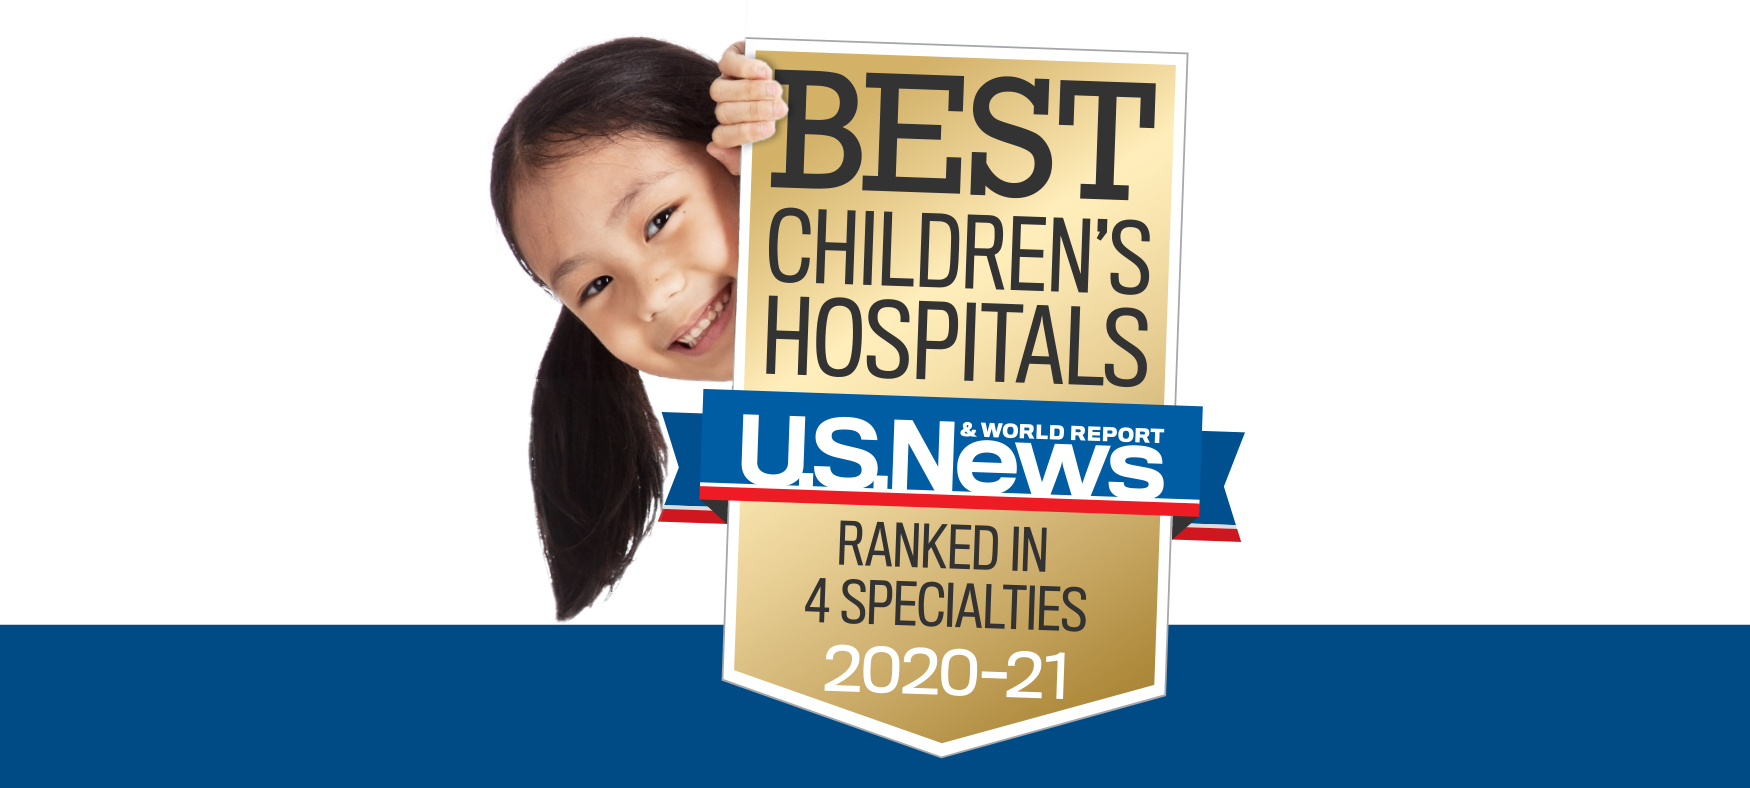 UC Davis Children's Hospital ranked among nation's best by U.S. News & World Report